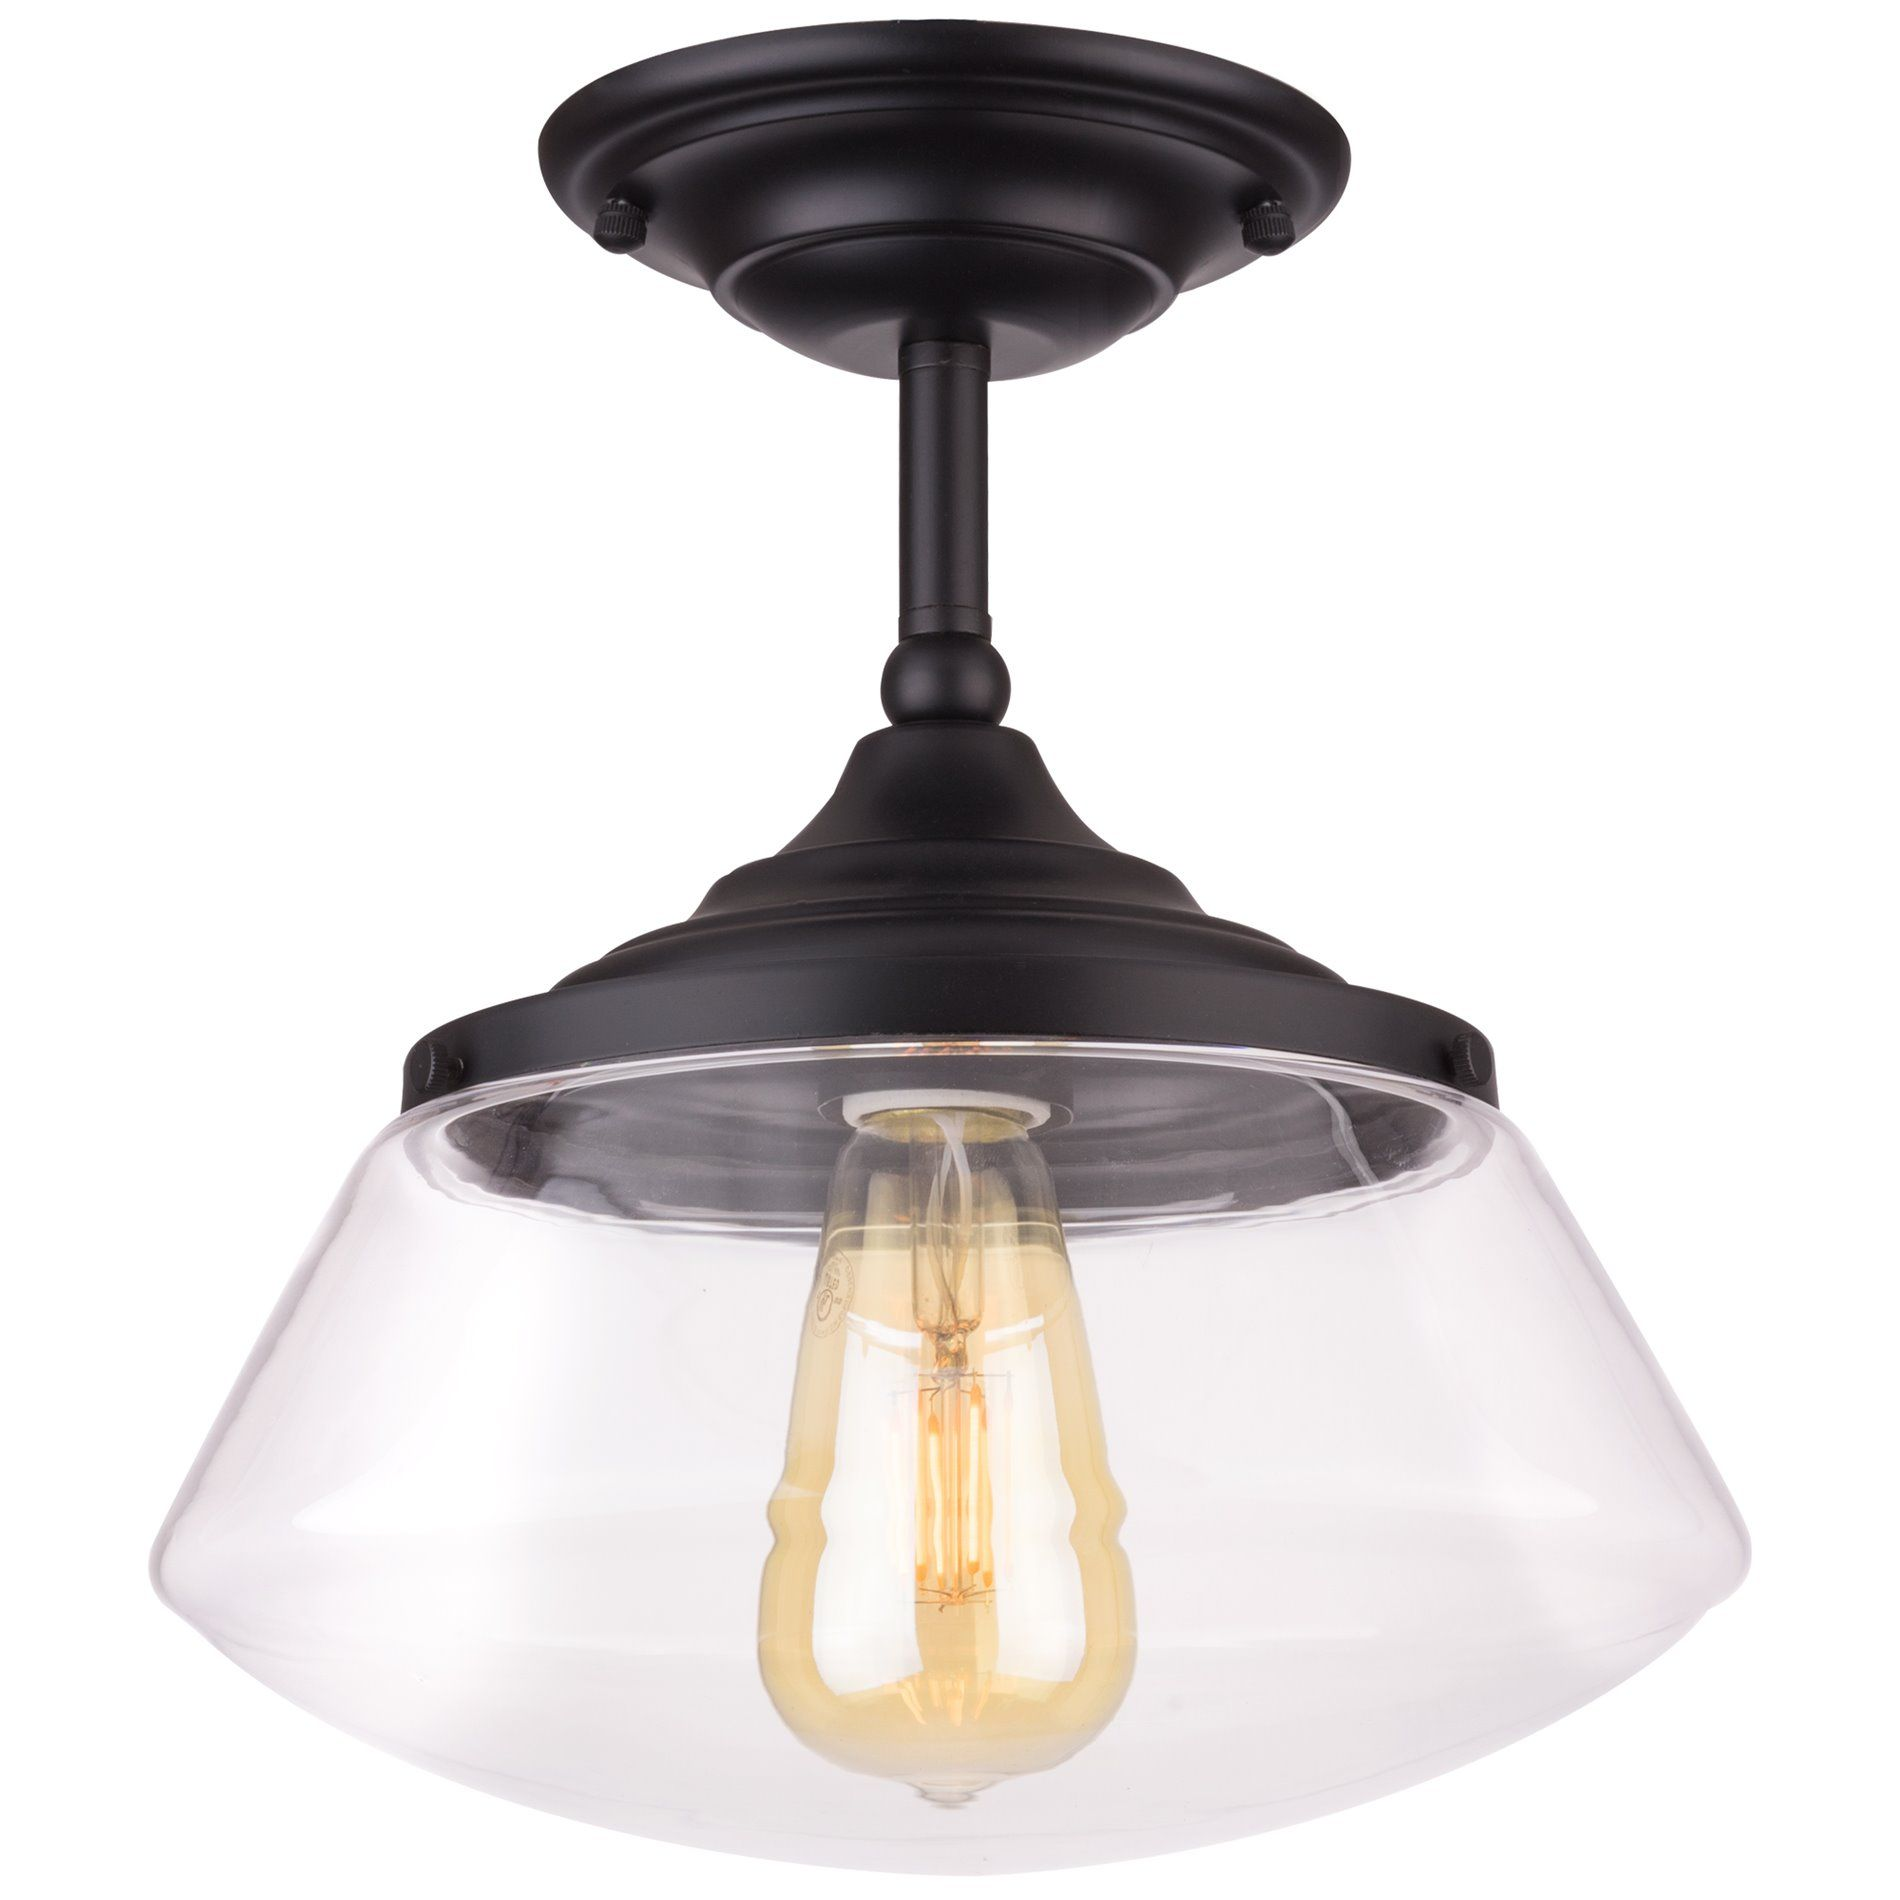 Home Ceiling Lights Ceiling Light Fixtures Glass Shades